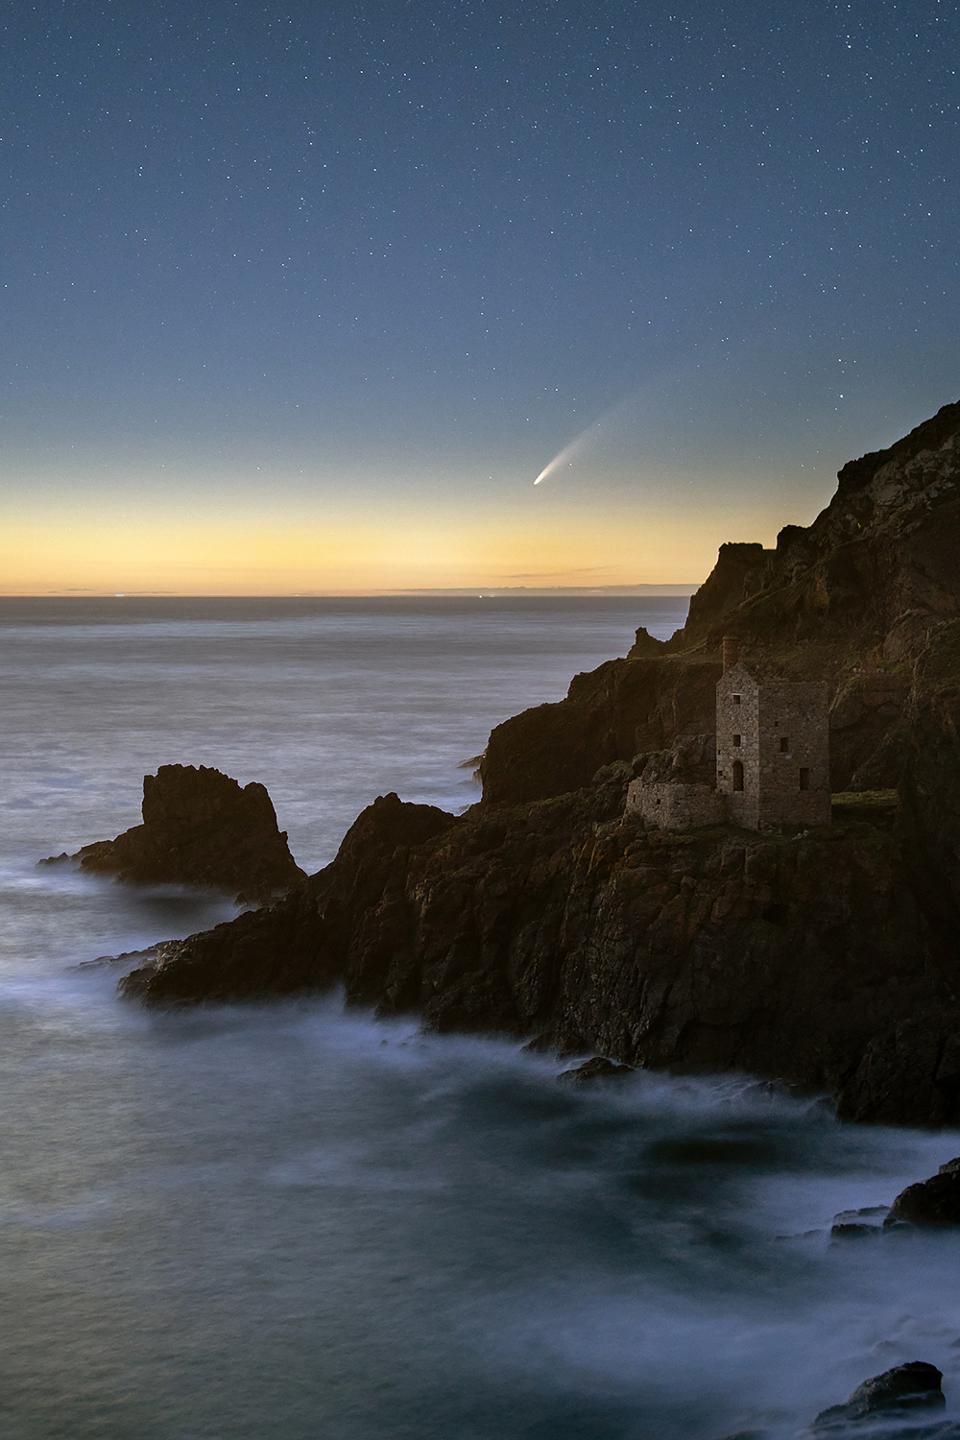 Comet NEOWISE above Crown Mines in Cornwall, as captured by landscape and nightscape photographer Ollie Taylor (photographed reproduced with permission).